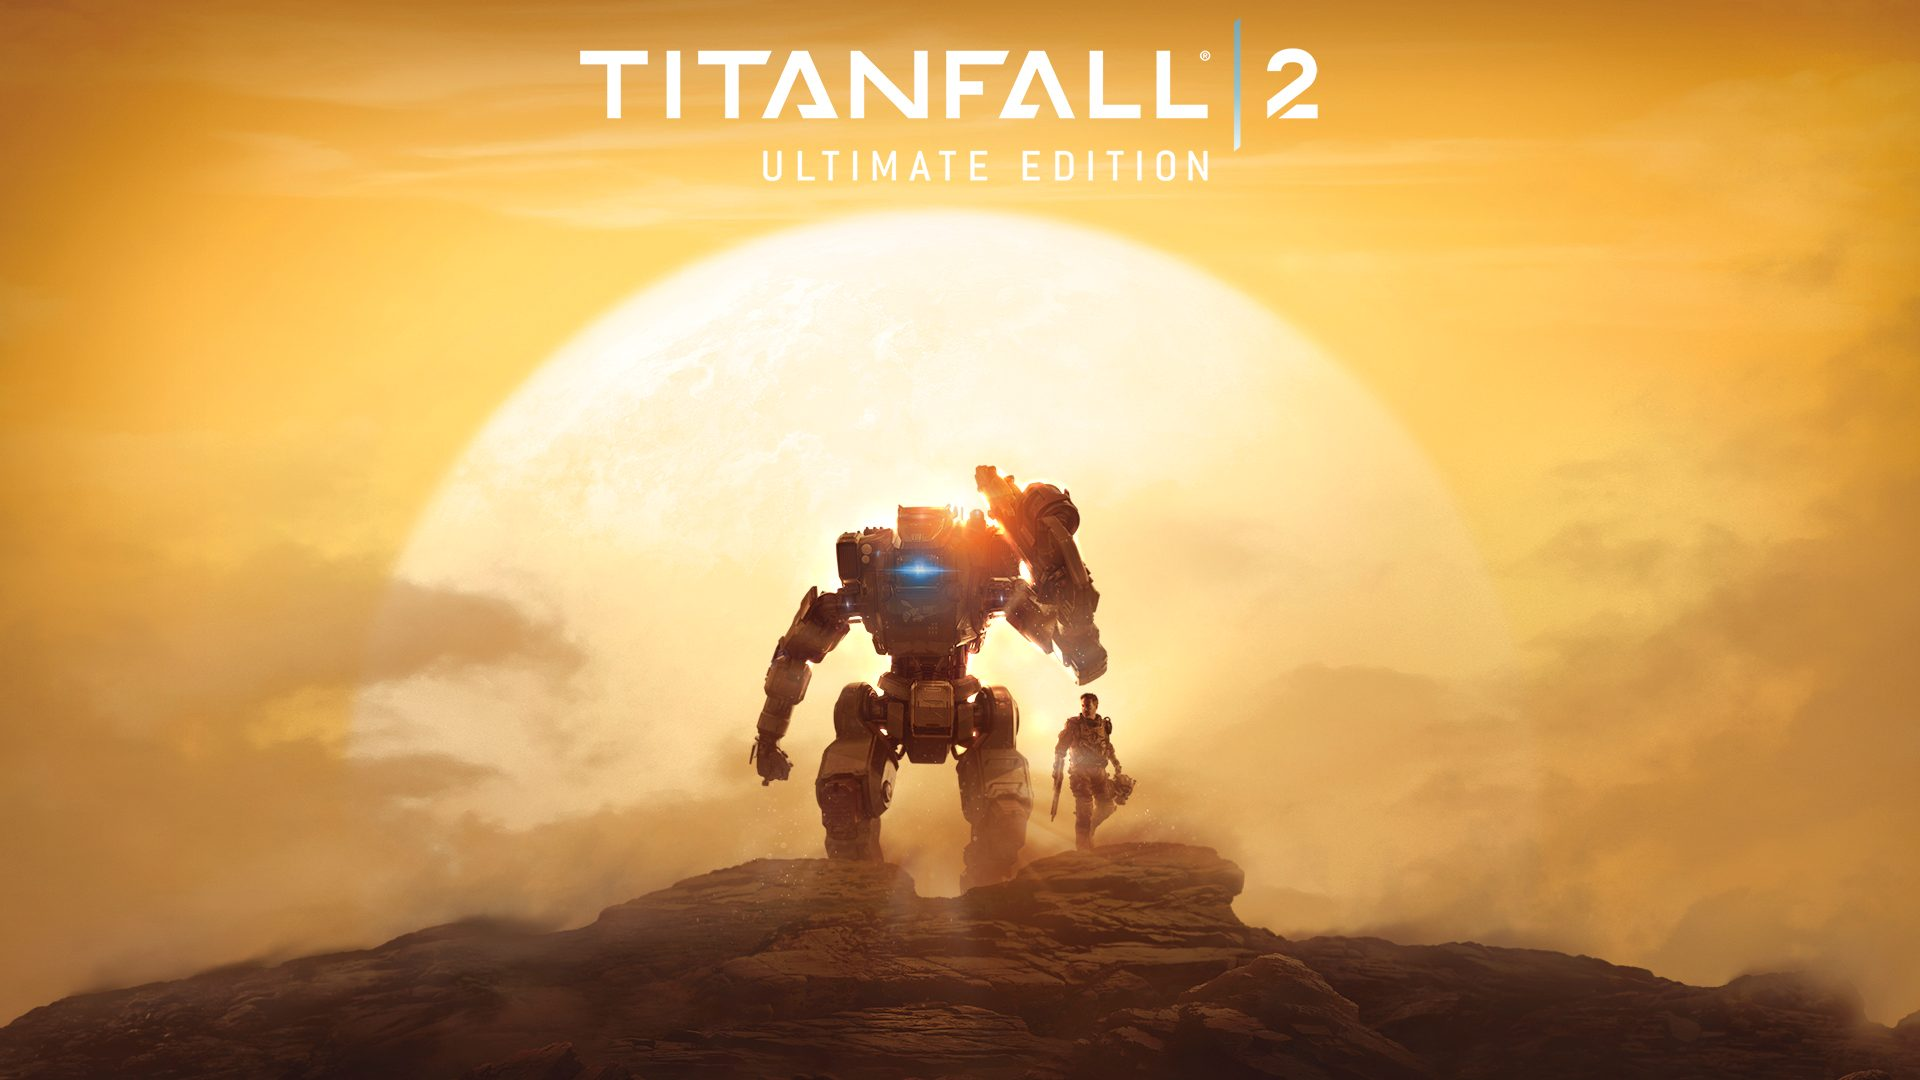 Fall Live Wallpaper Phone Titanfall 2 Ultimate Edition Is Now Available Titanfall